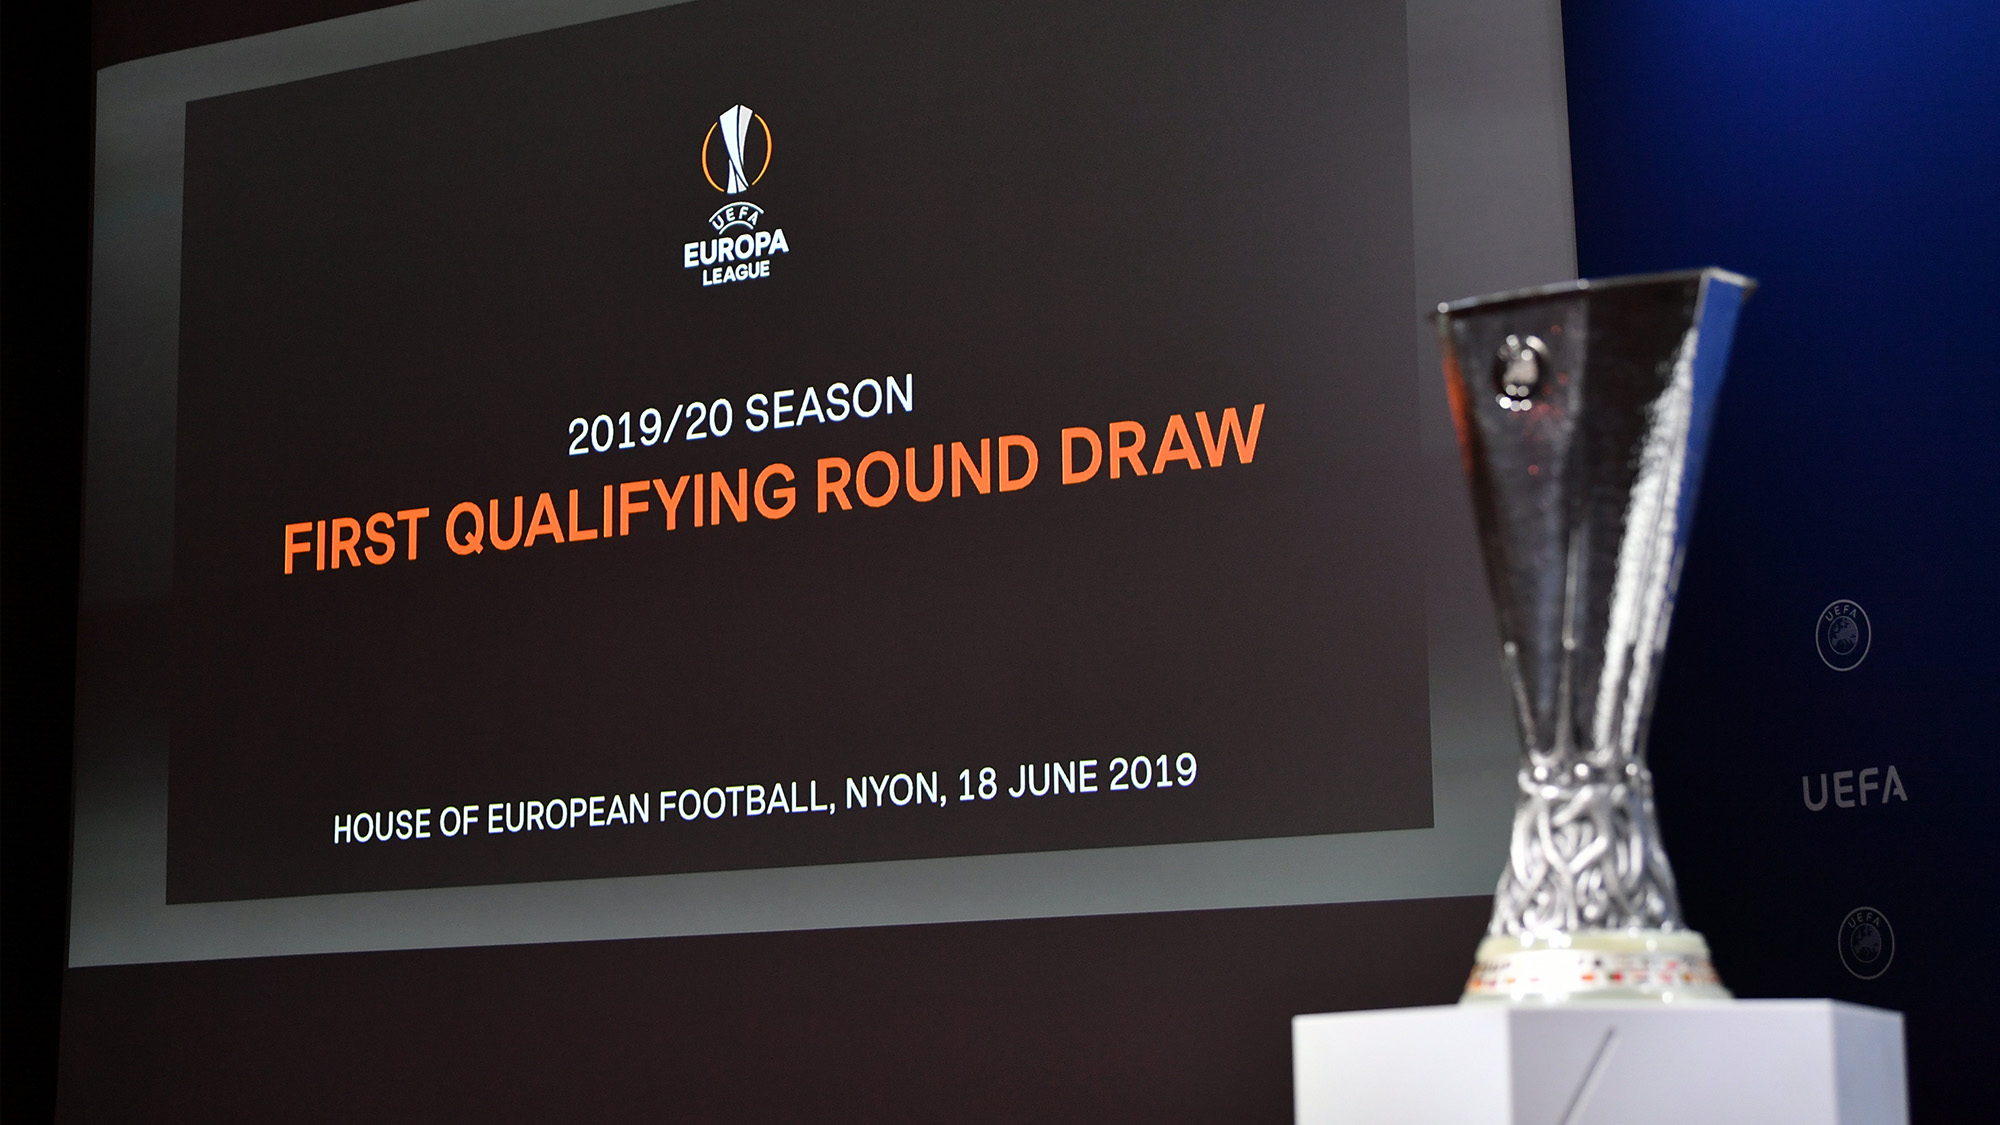 Aberdeen Fc Europa League Draw Reaction From The Manager